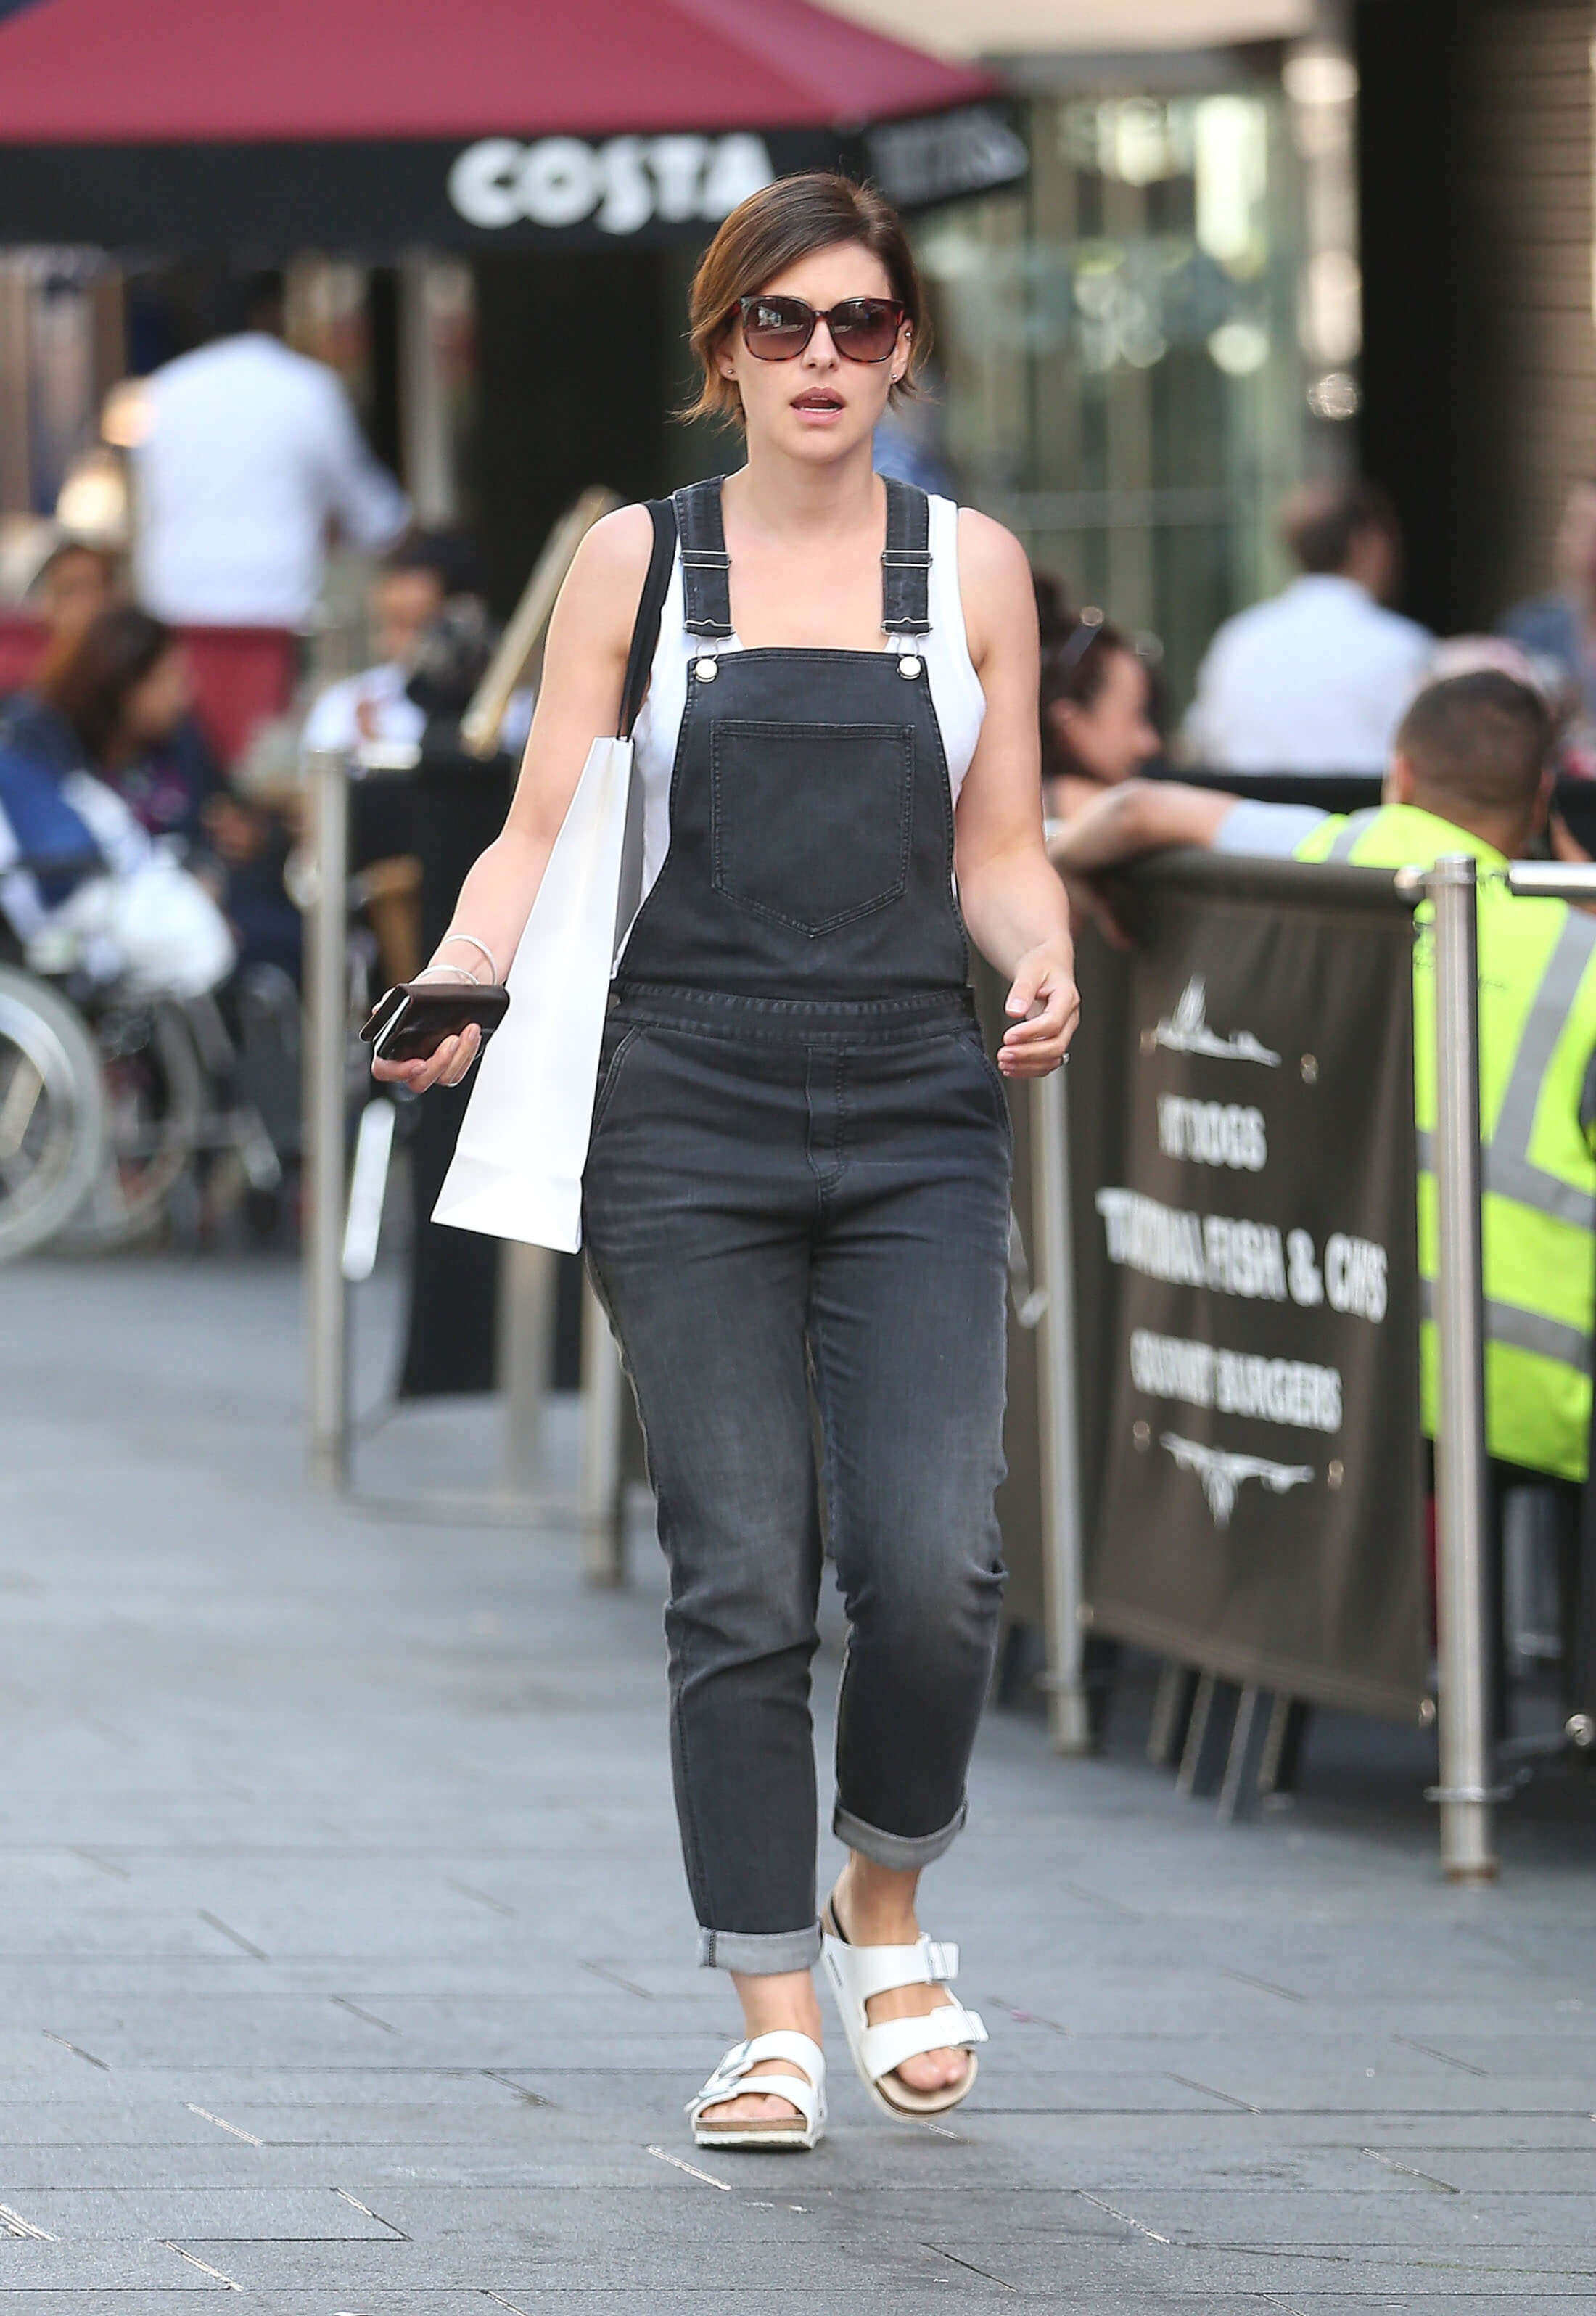 Emma Willis awesome pic